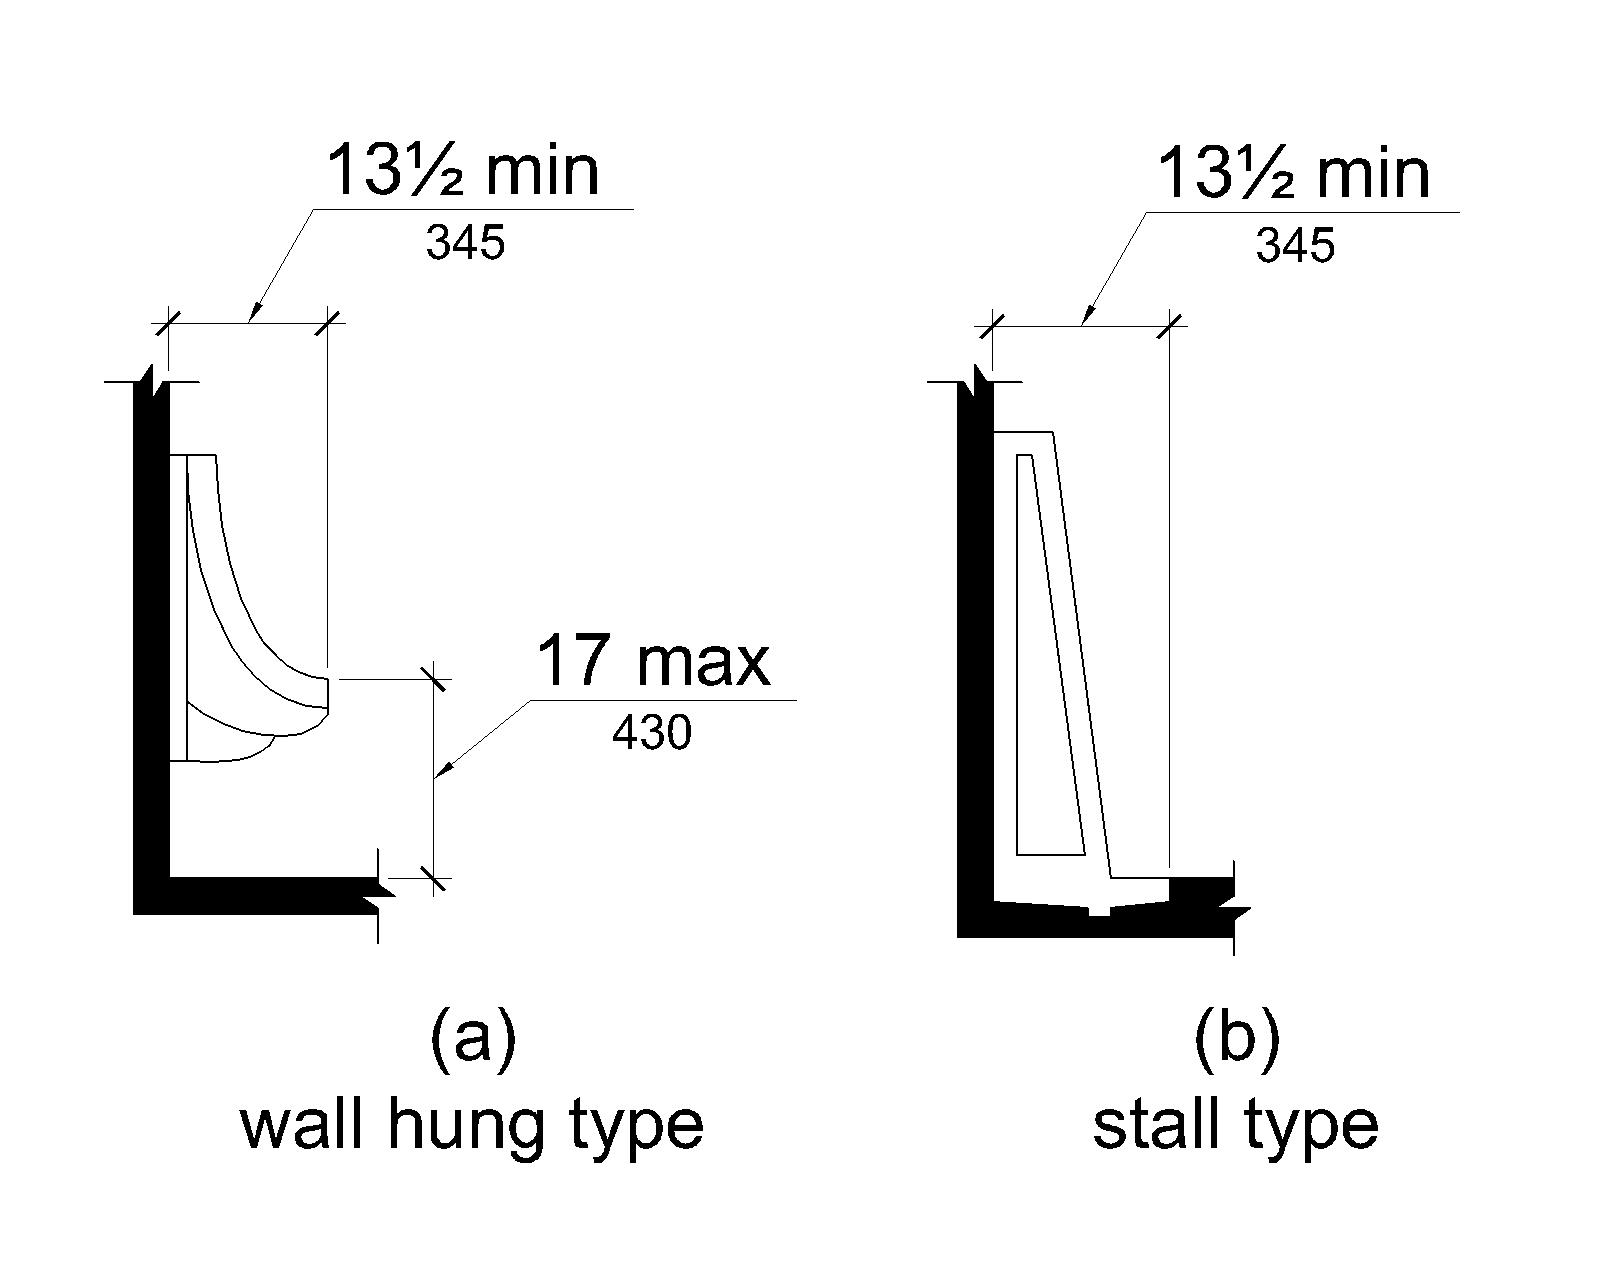 Figure (a) is an elevation drawing of a wall hung type having the urinal rim 17 inches (430 mm) maximum above the deck surface with a minimum depth of 13½ inches (350 mm) measured from the outer face of the rim to the back of the fixture. Figure (b) is an elevation drawing of a stall (deck surface mounted) type having a minimum depth of 13½ inches (350 mm) measured from the outer face of the rim to the back of the fixture.